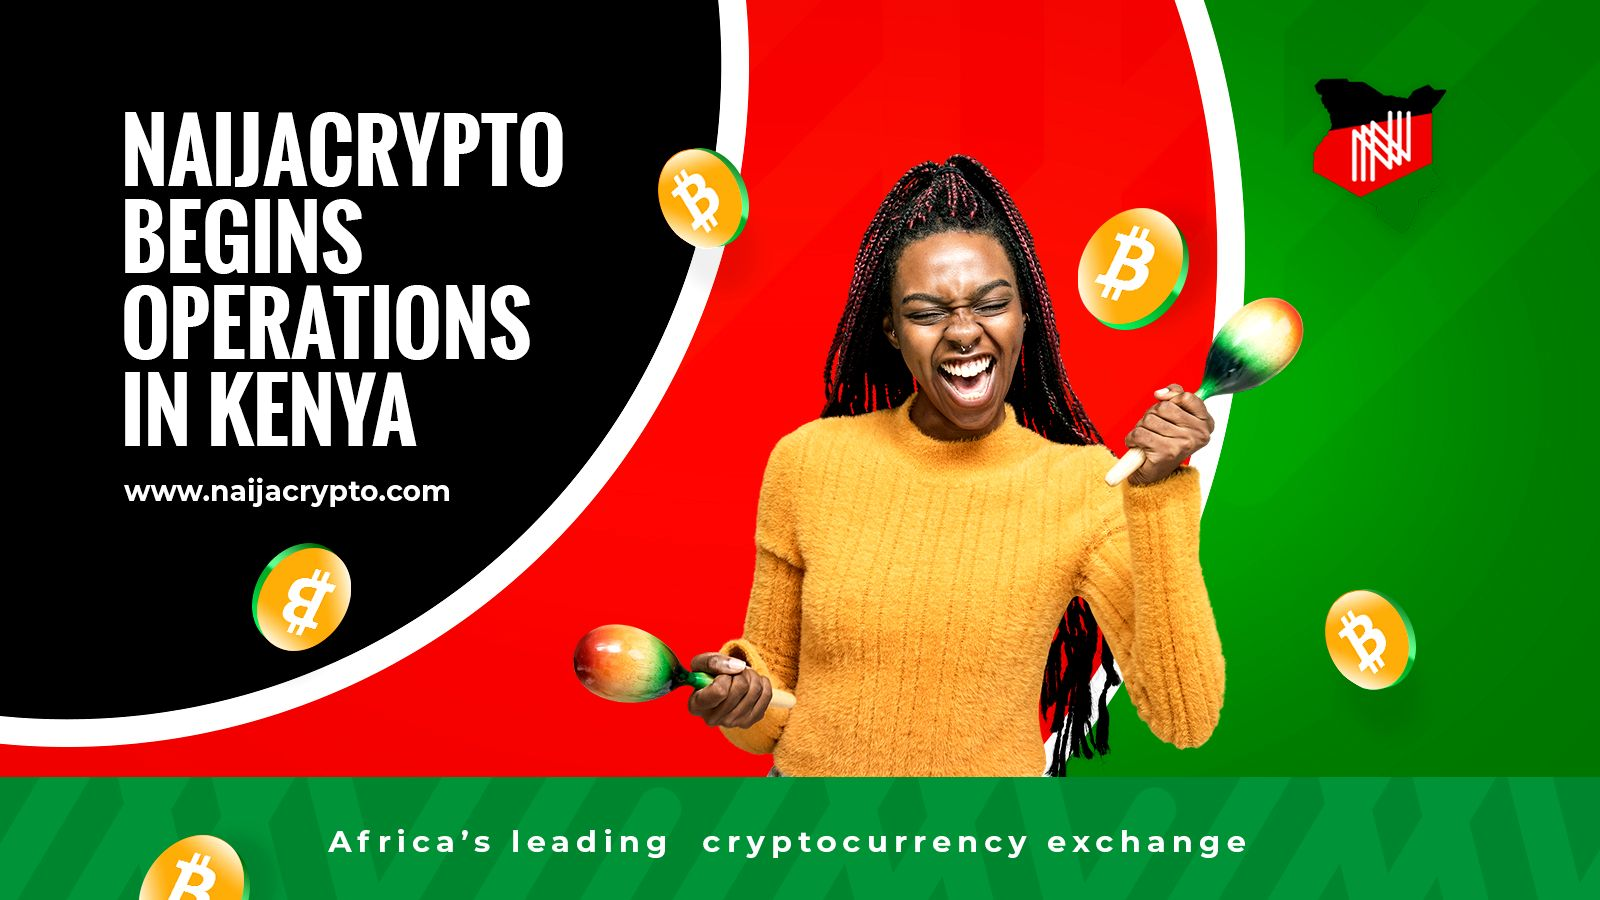 NaijaCrypto Launches in Kenya with Kenya Shilling (KES) Trading Pairs